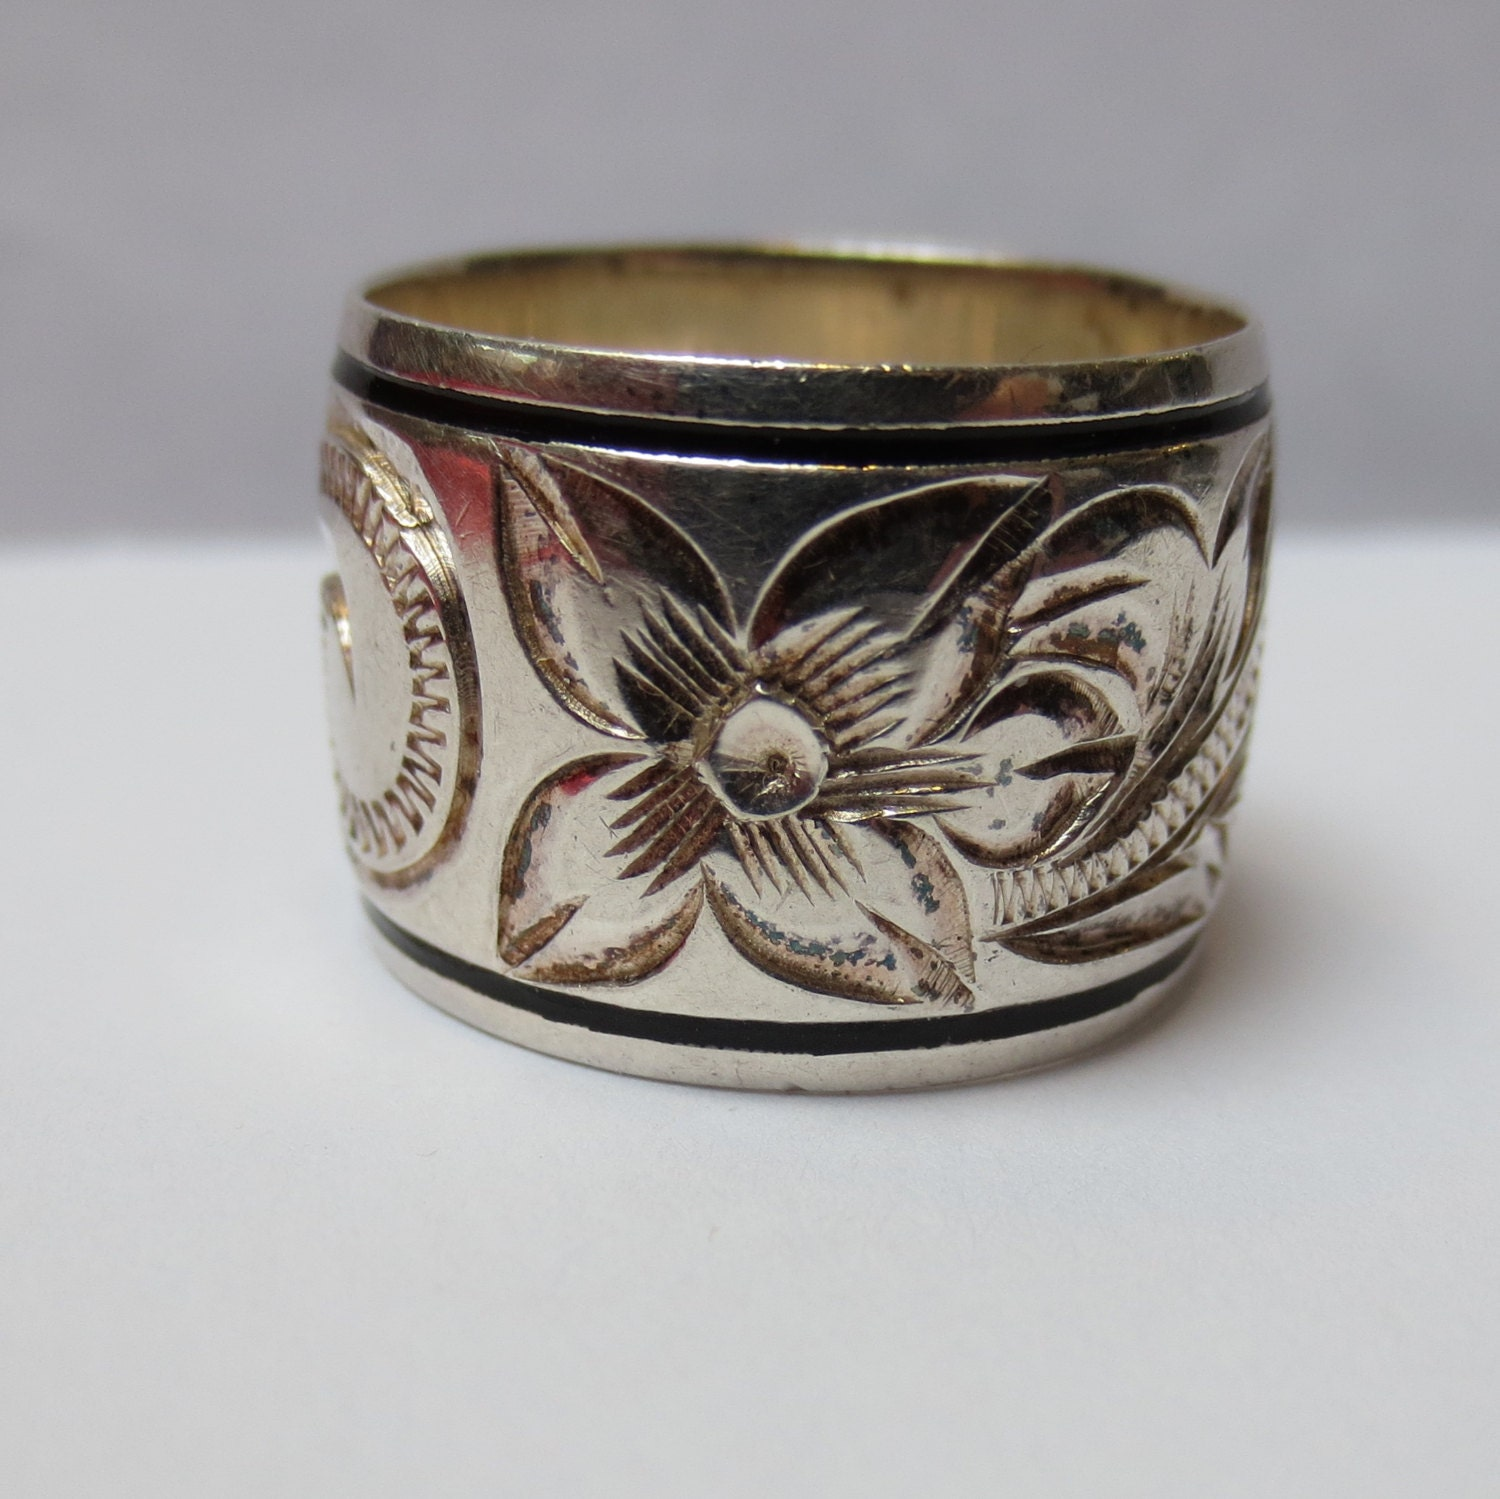 HAWAIIAN WIDE WEDDING Ring Hand Engraved Enamel